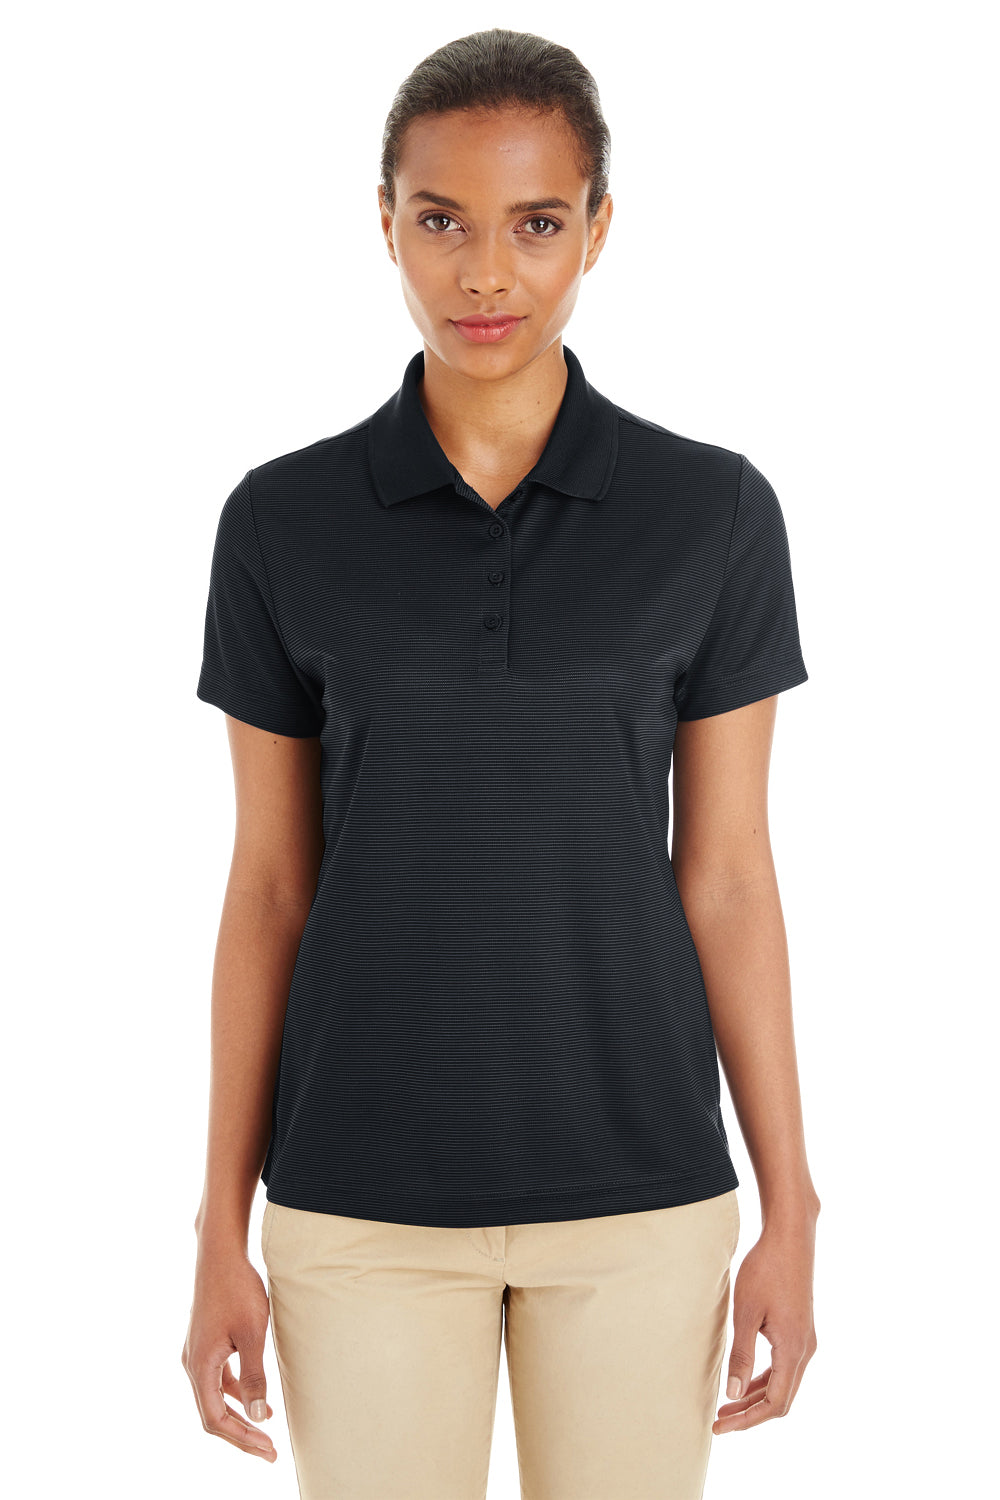 Core 365 CE102W Womens Express Performance Moisture Wicking Short Sleeve Polo Shirt Black Front